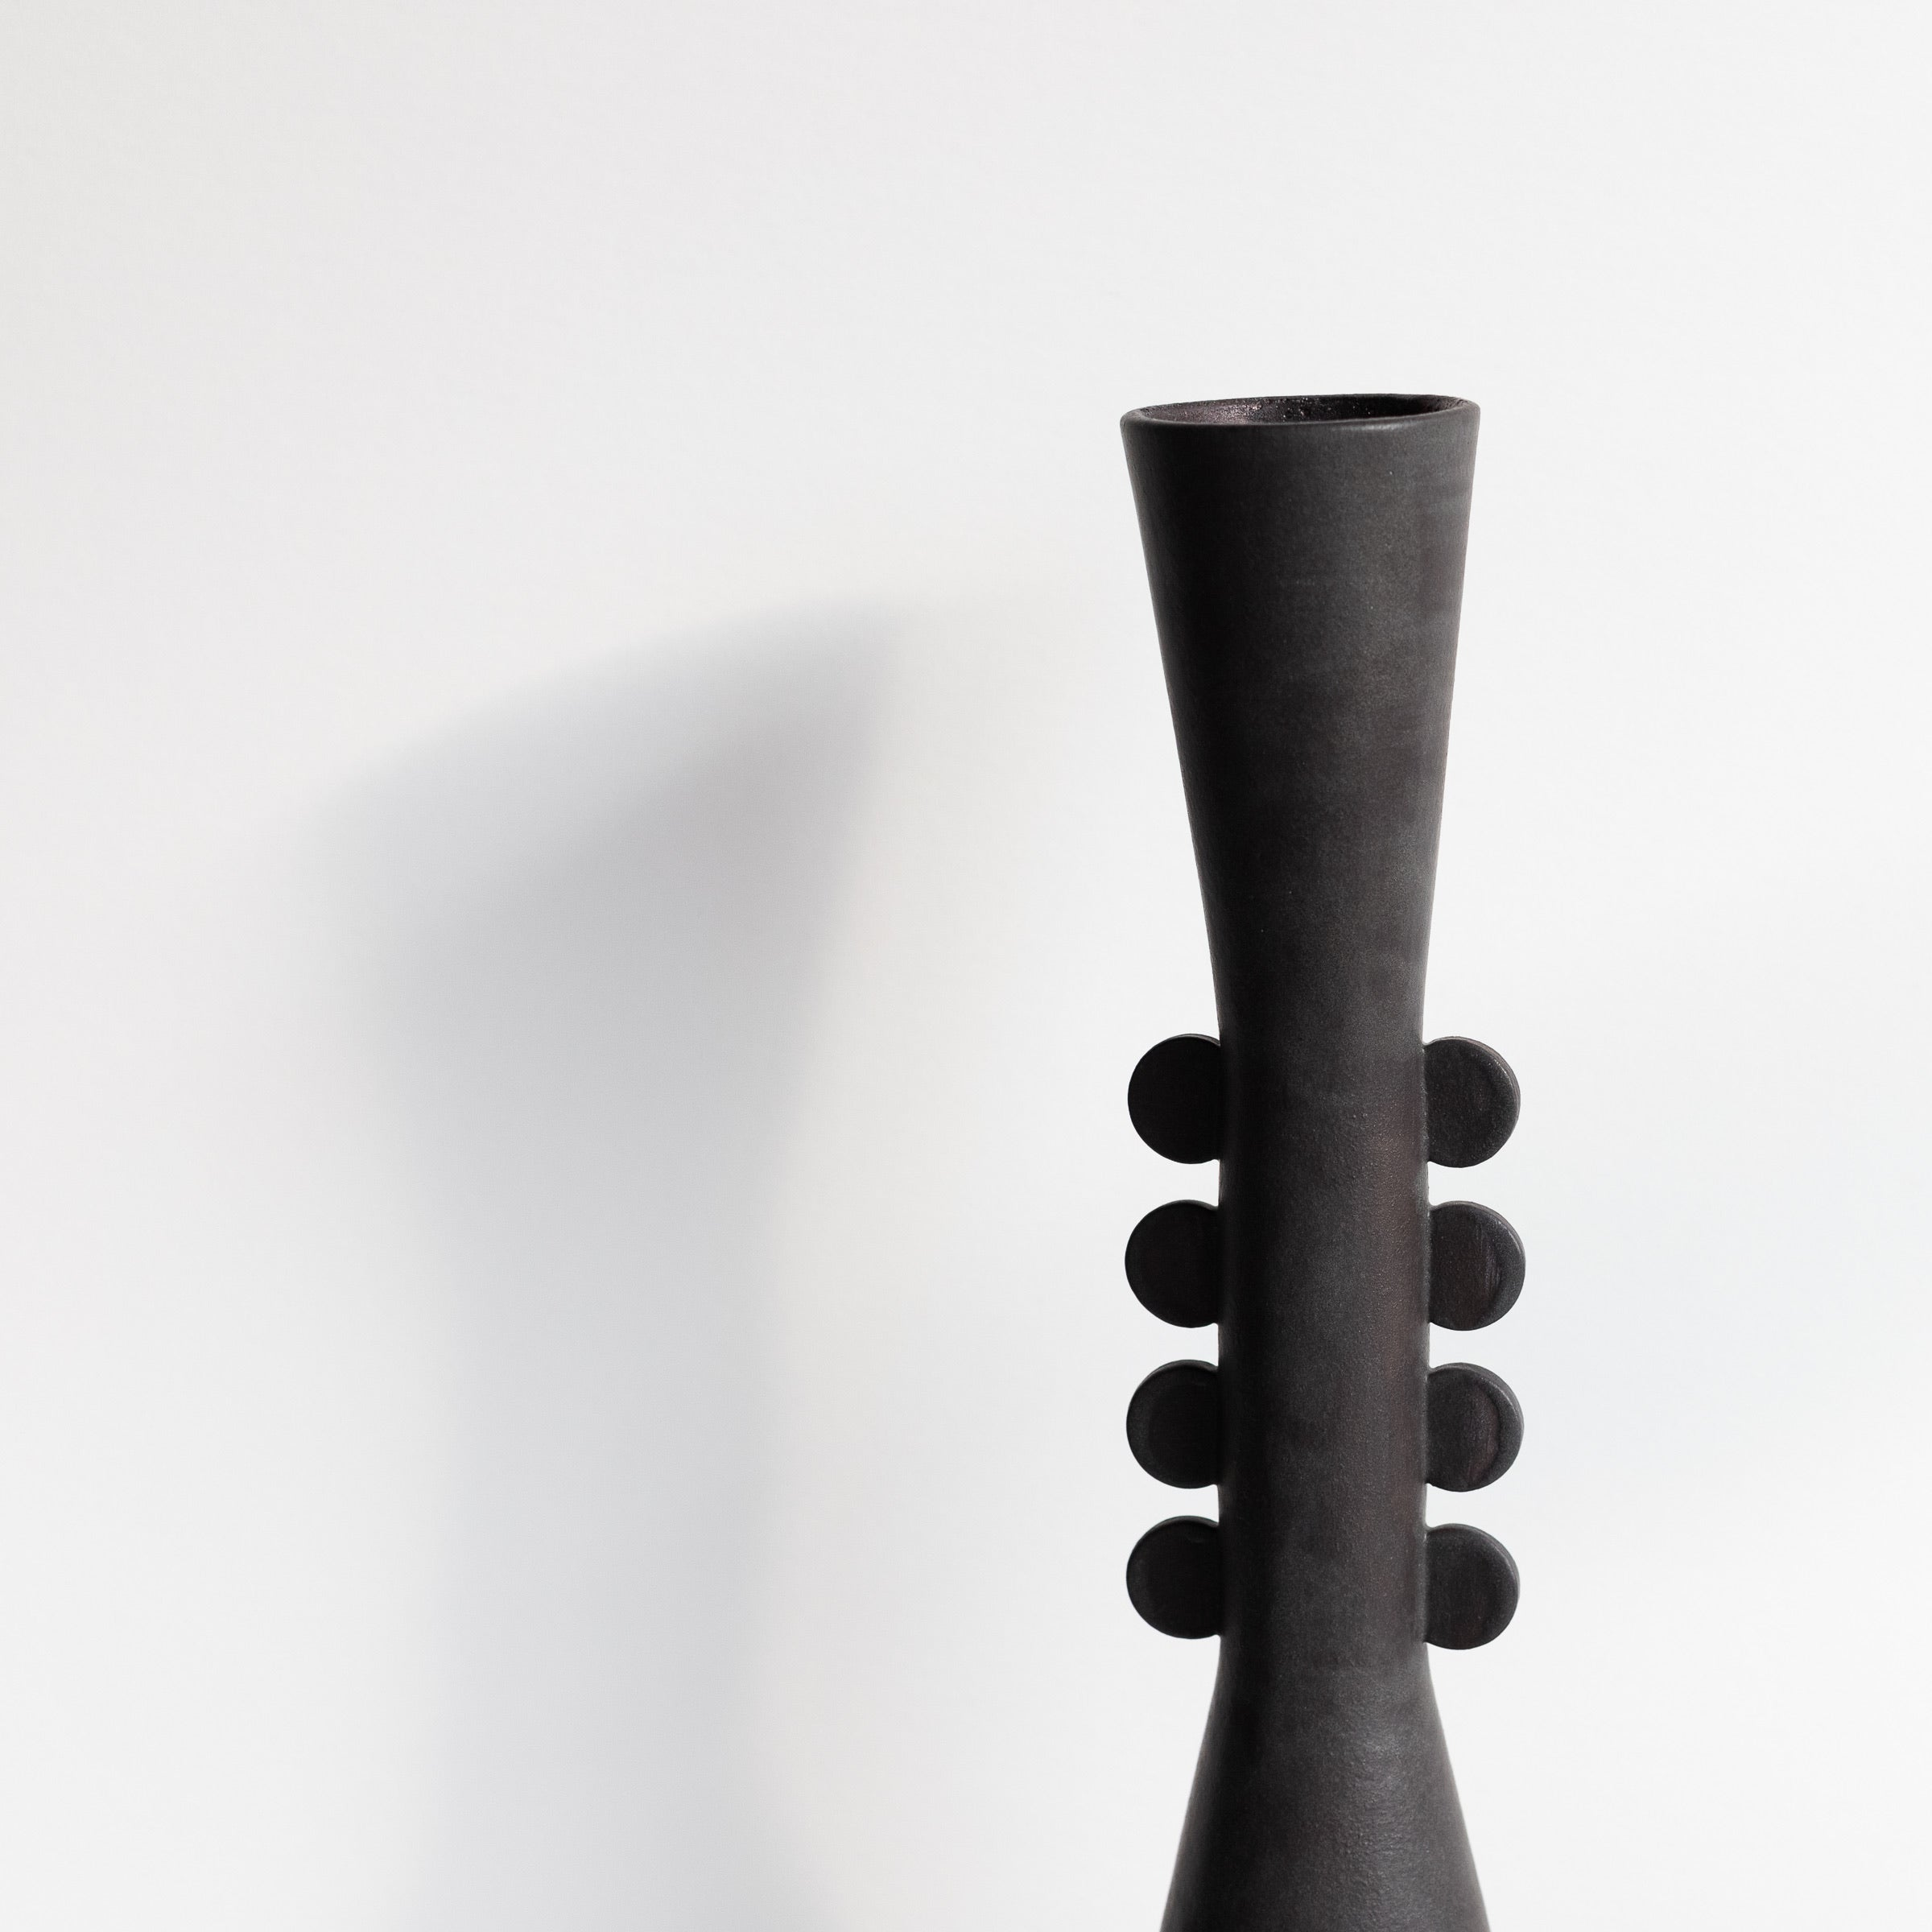 Bobbie Specker: Tall Dot Vase and Angled Vase